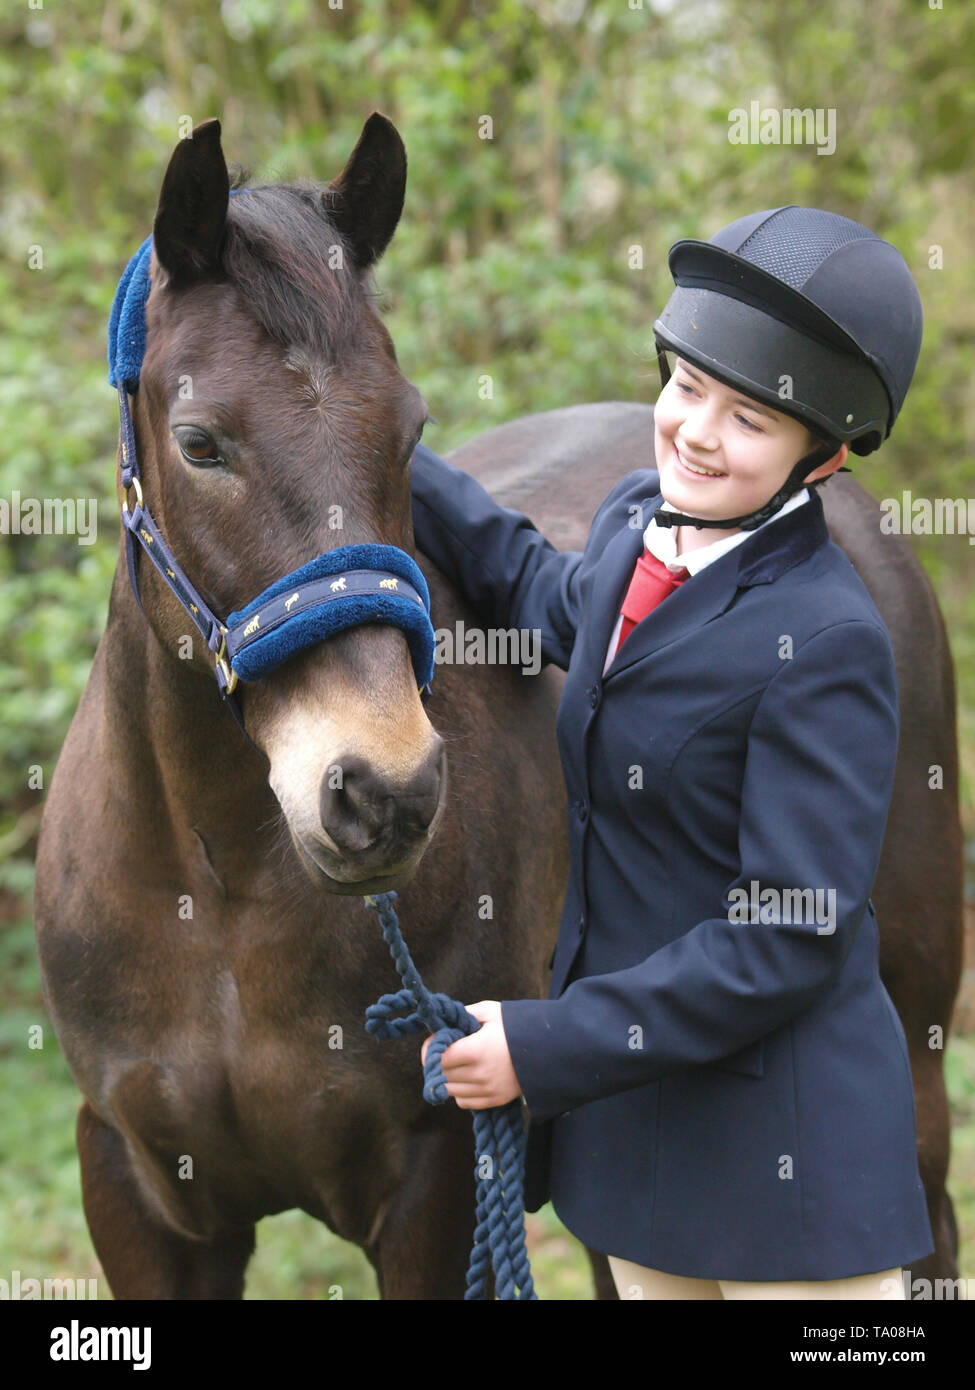 A young girl stands next to her favourite bay horse. - Stock Image